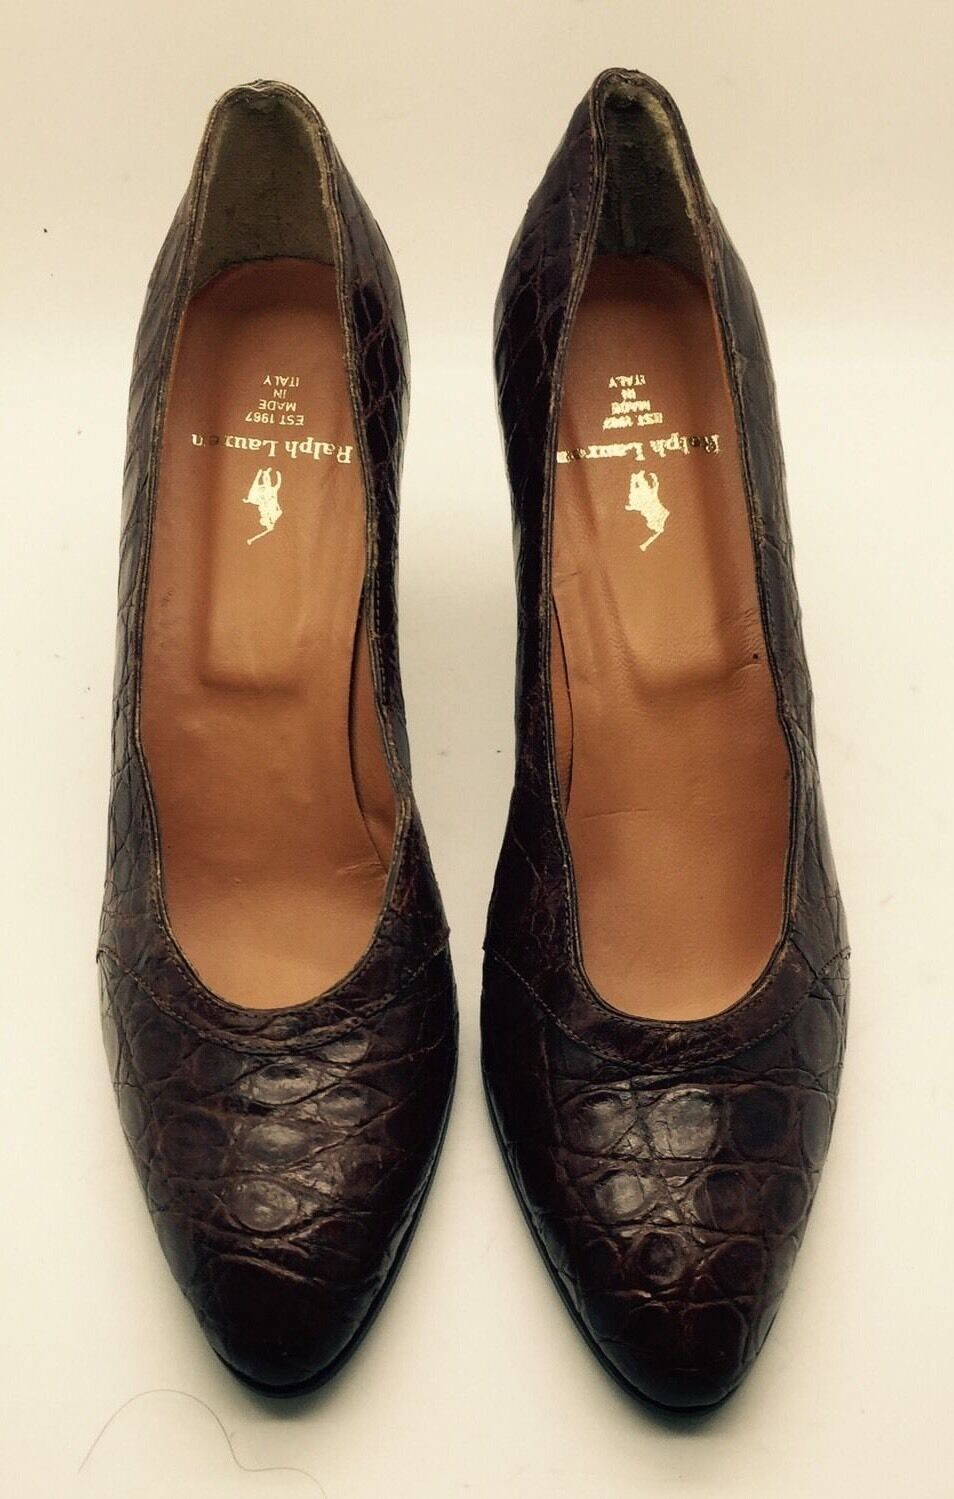 perfezionare RALPH LAUREN Marrone Authentic Authentic Authentic Crocodile Skin Pumps Heels 7.5 AA  NEW     acquisti online